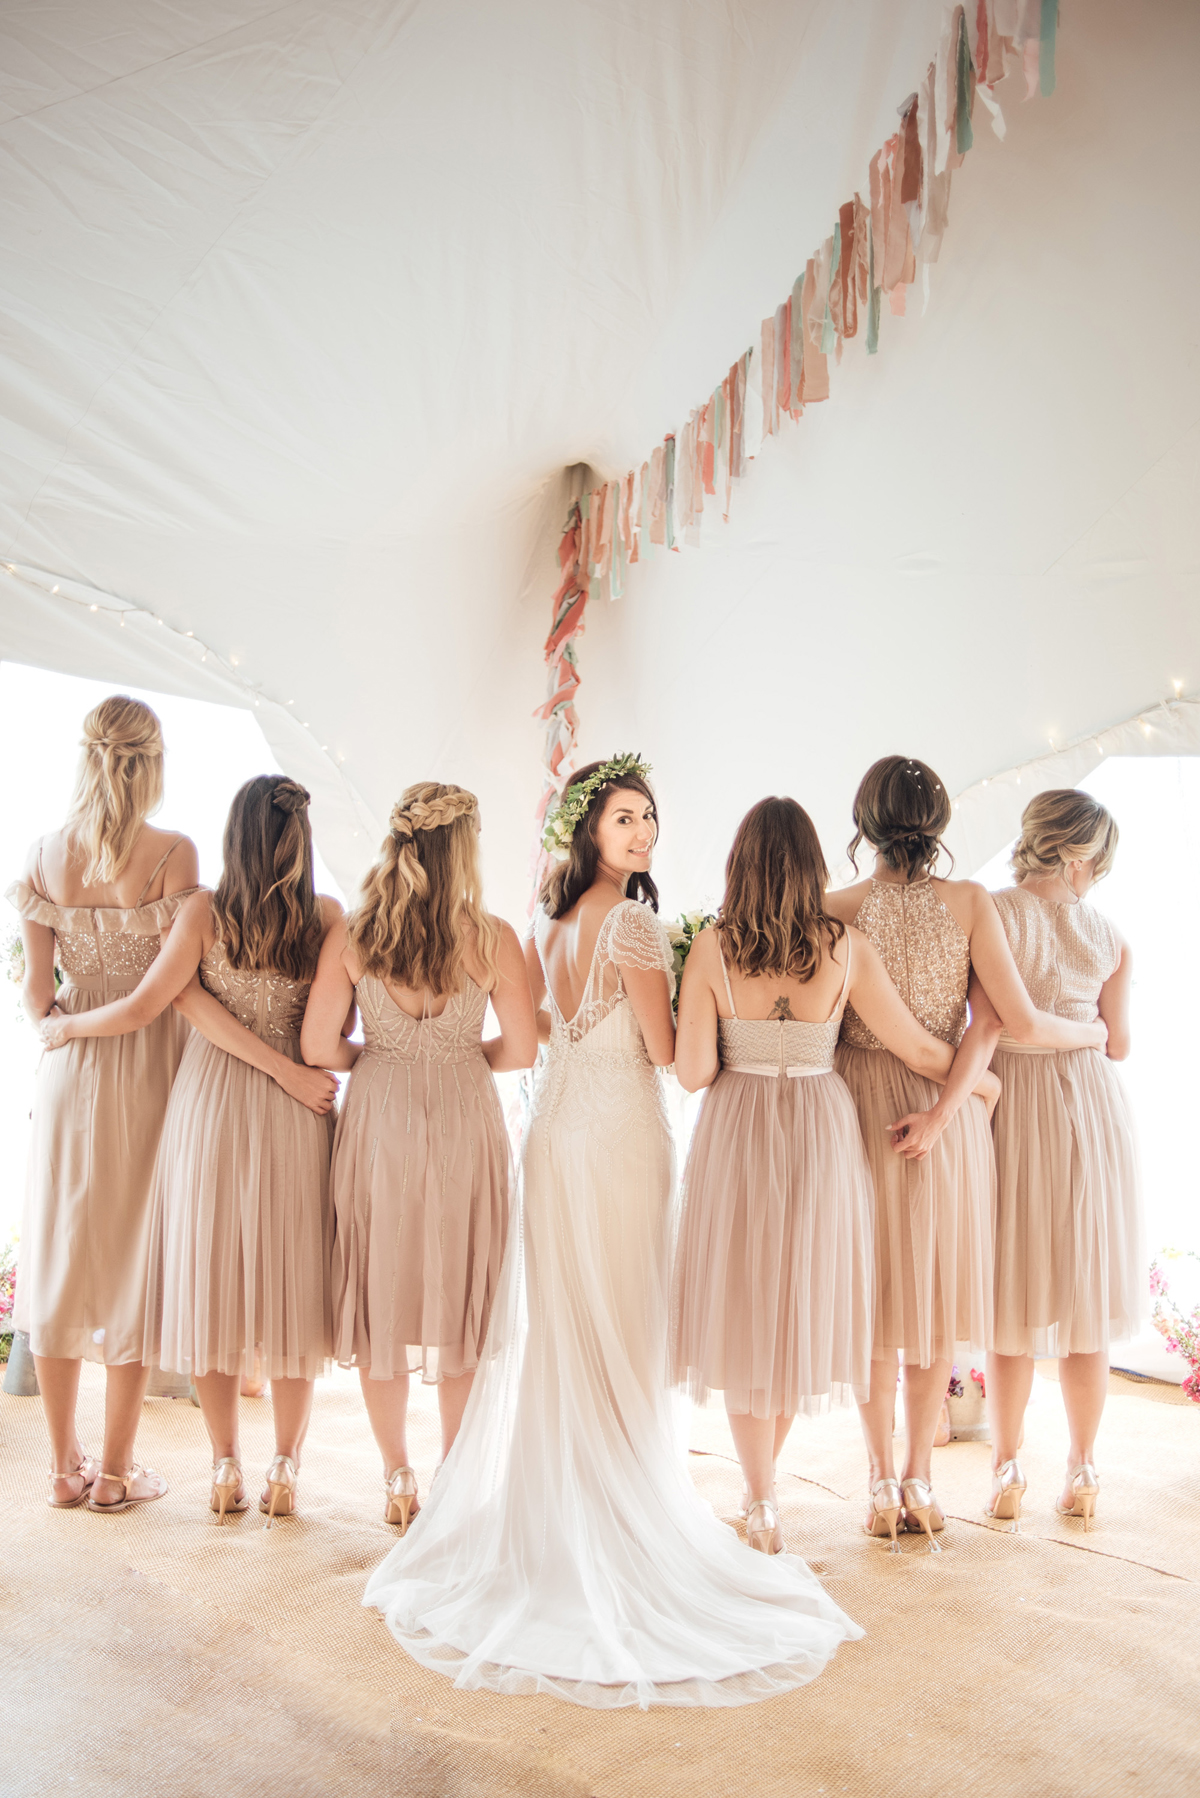 Maggie Sottero Pearls Peach Tones For A Rainy Day Wedding On The